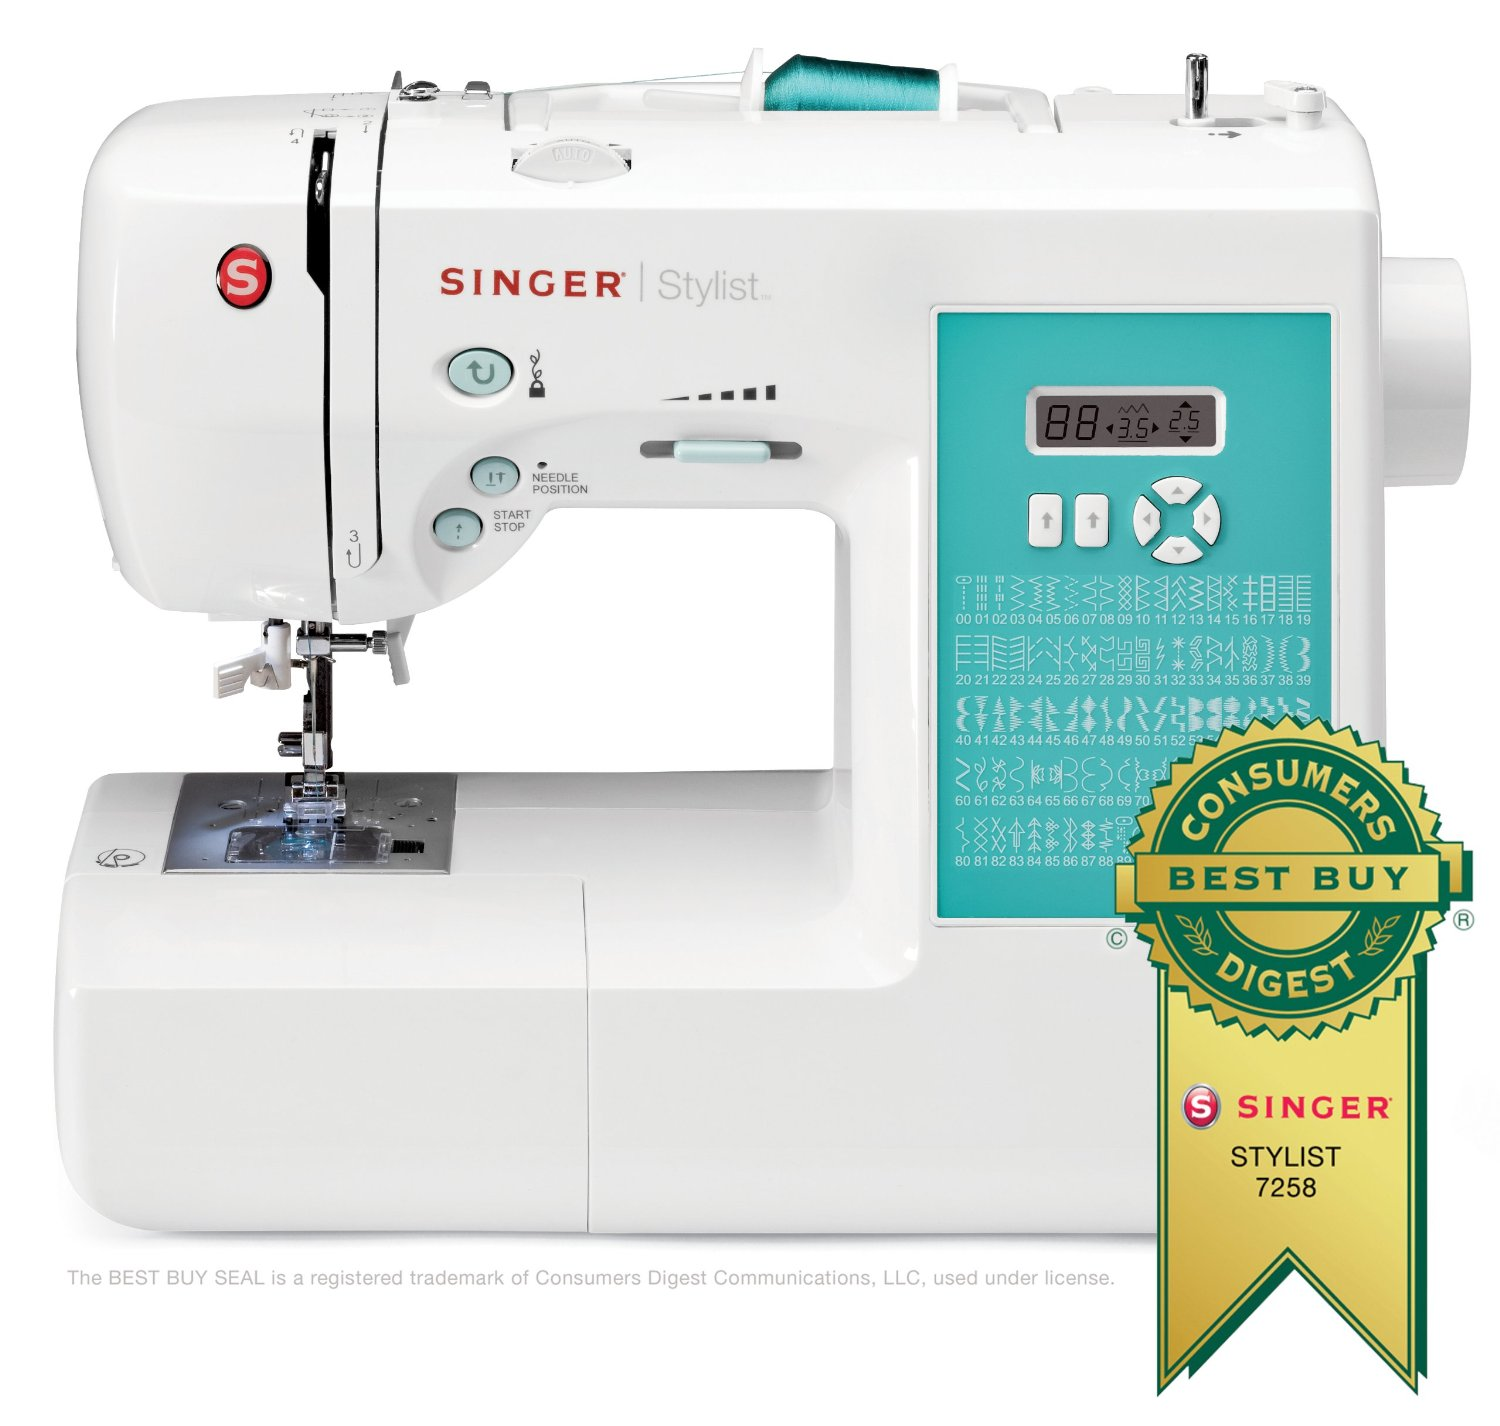 Top 10 Best Sewing Machines For Beginners of 2017